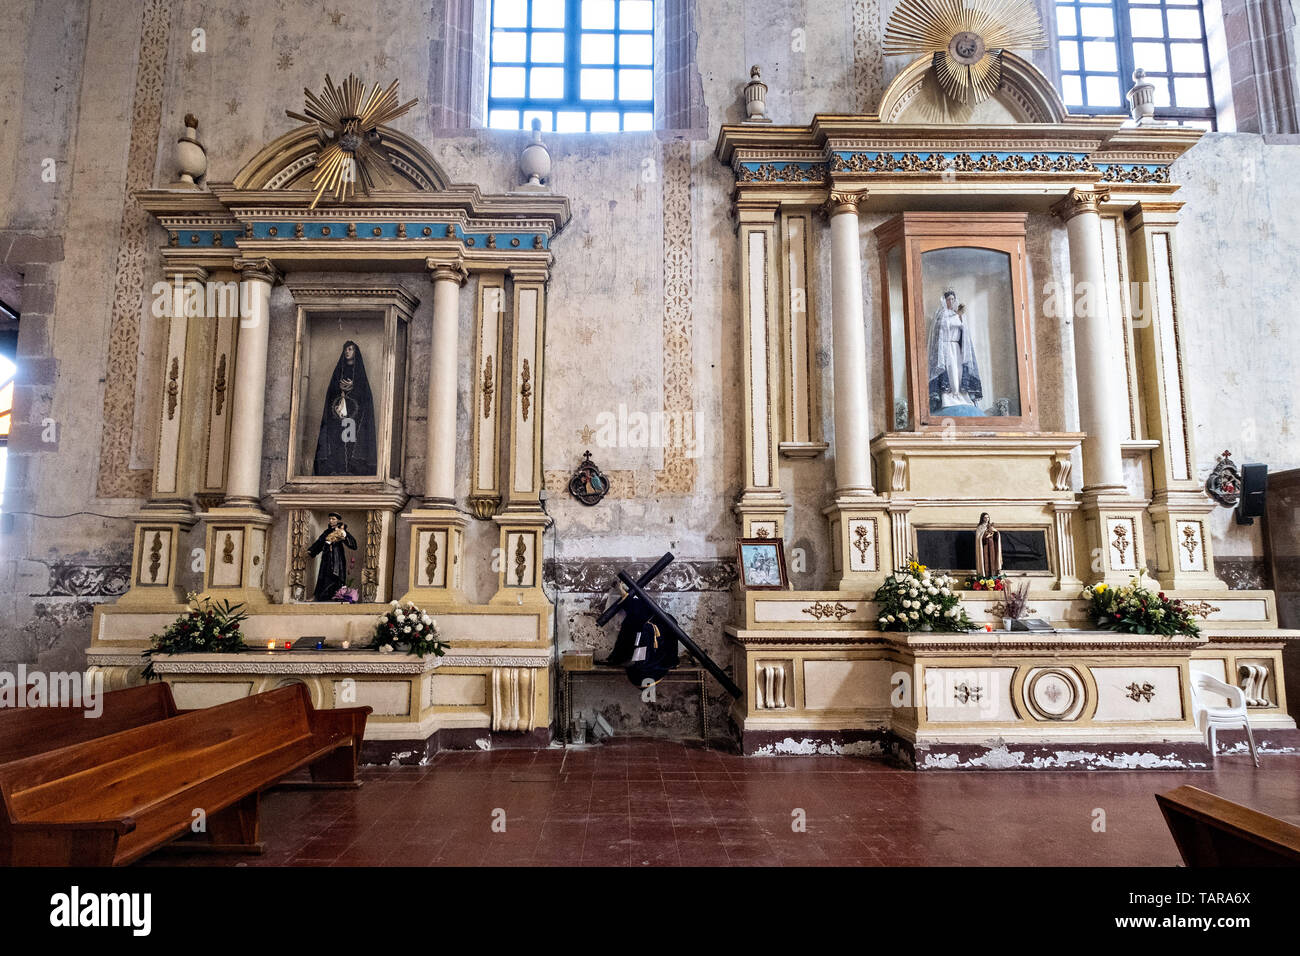 Interior of the San Nicolas Tolentino Temple and Ex-Monastery in Actopan, Hidalgo, Mexico. The colonial church and convent  was built in 1546 and combine architectural elements from the romantic, gothic and renaissance periods. - Stock Image